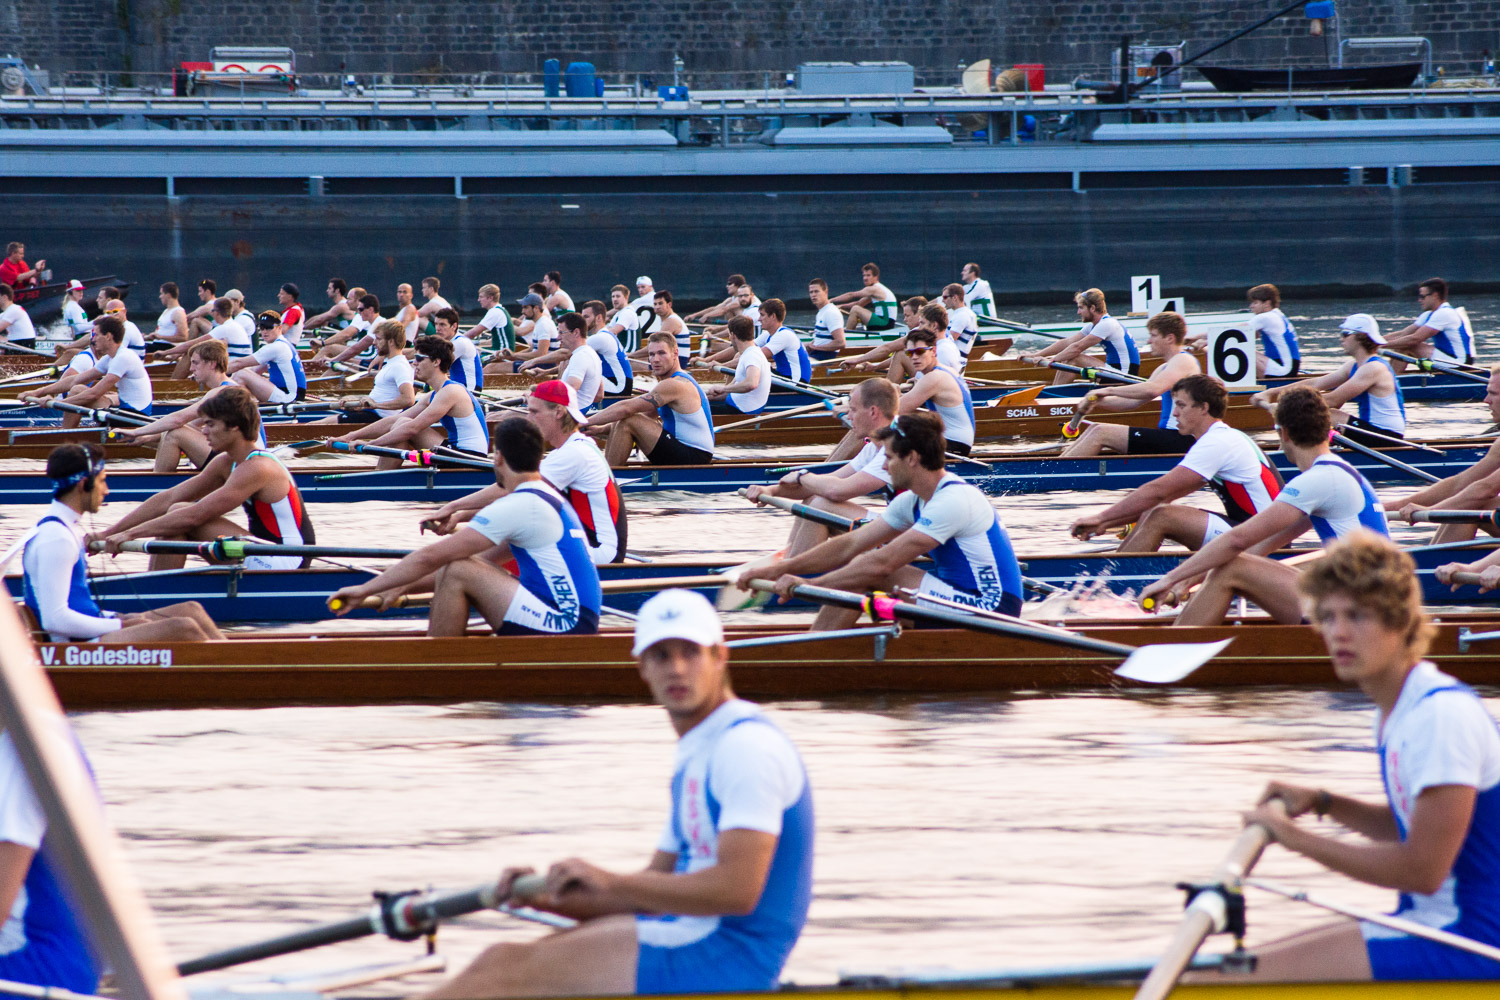 Cologne Men's Eight 2013 (by Paul Hense)